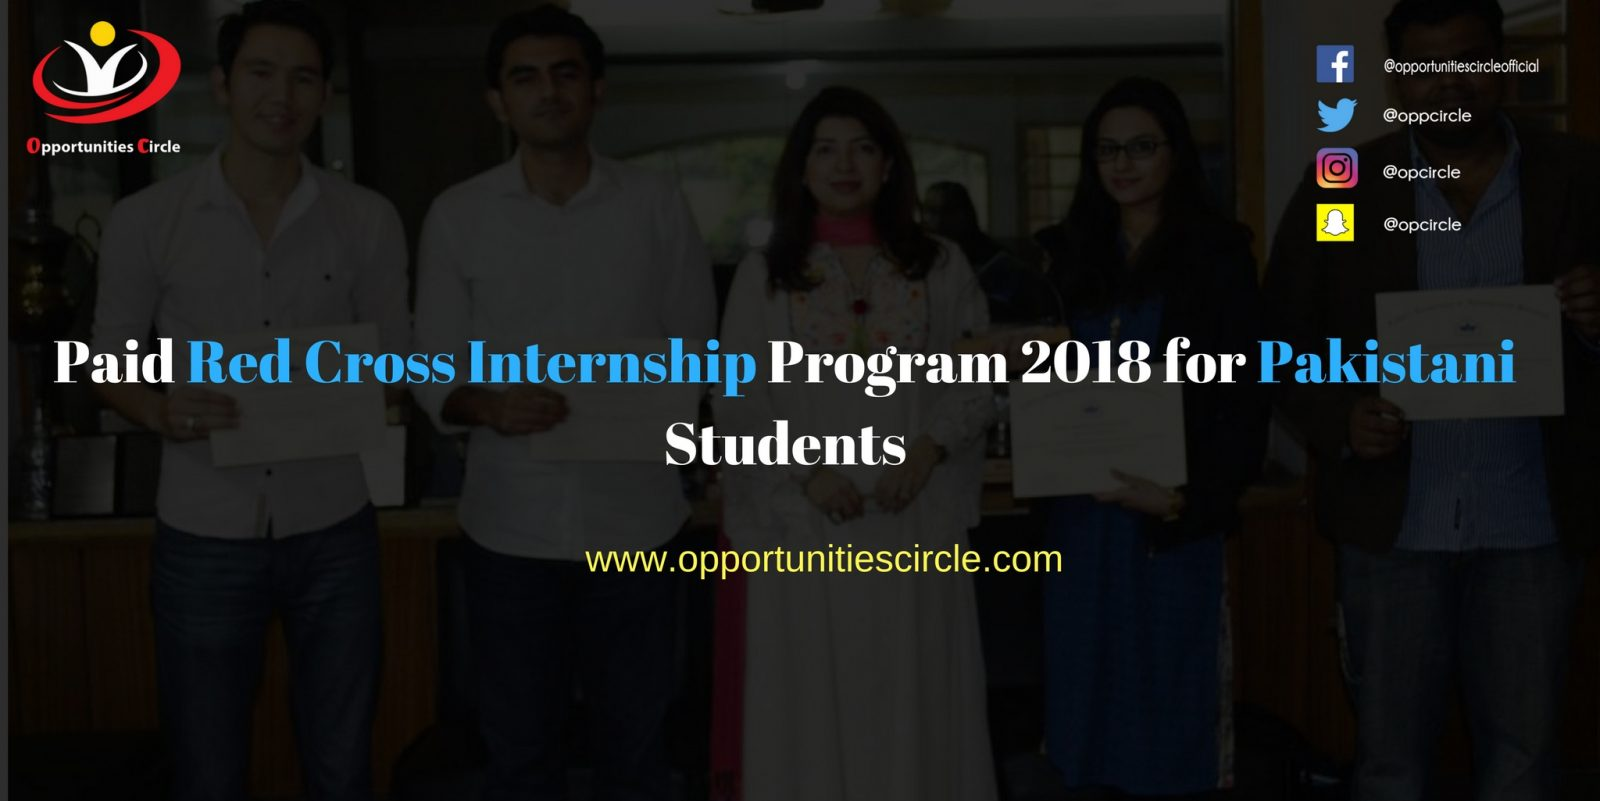 Paid Red Cross Internship Program 2018 for Pakistani Students - Paid Red Cross Internship Program 2018 for Pakistani Students